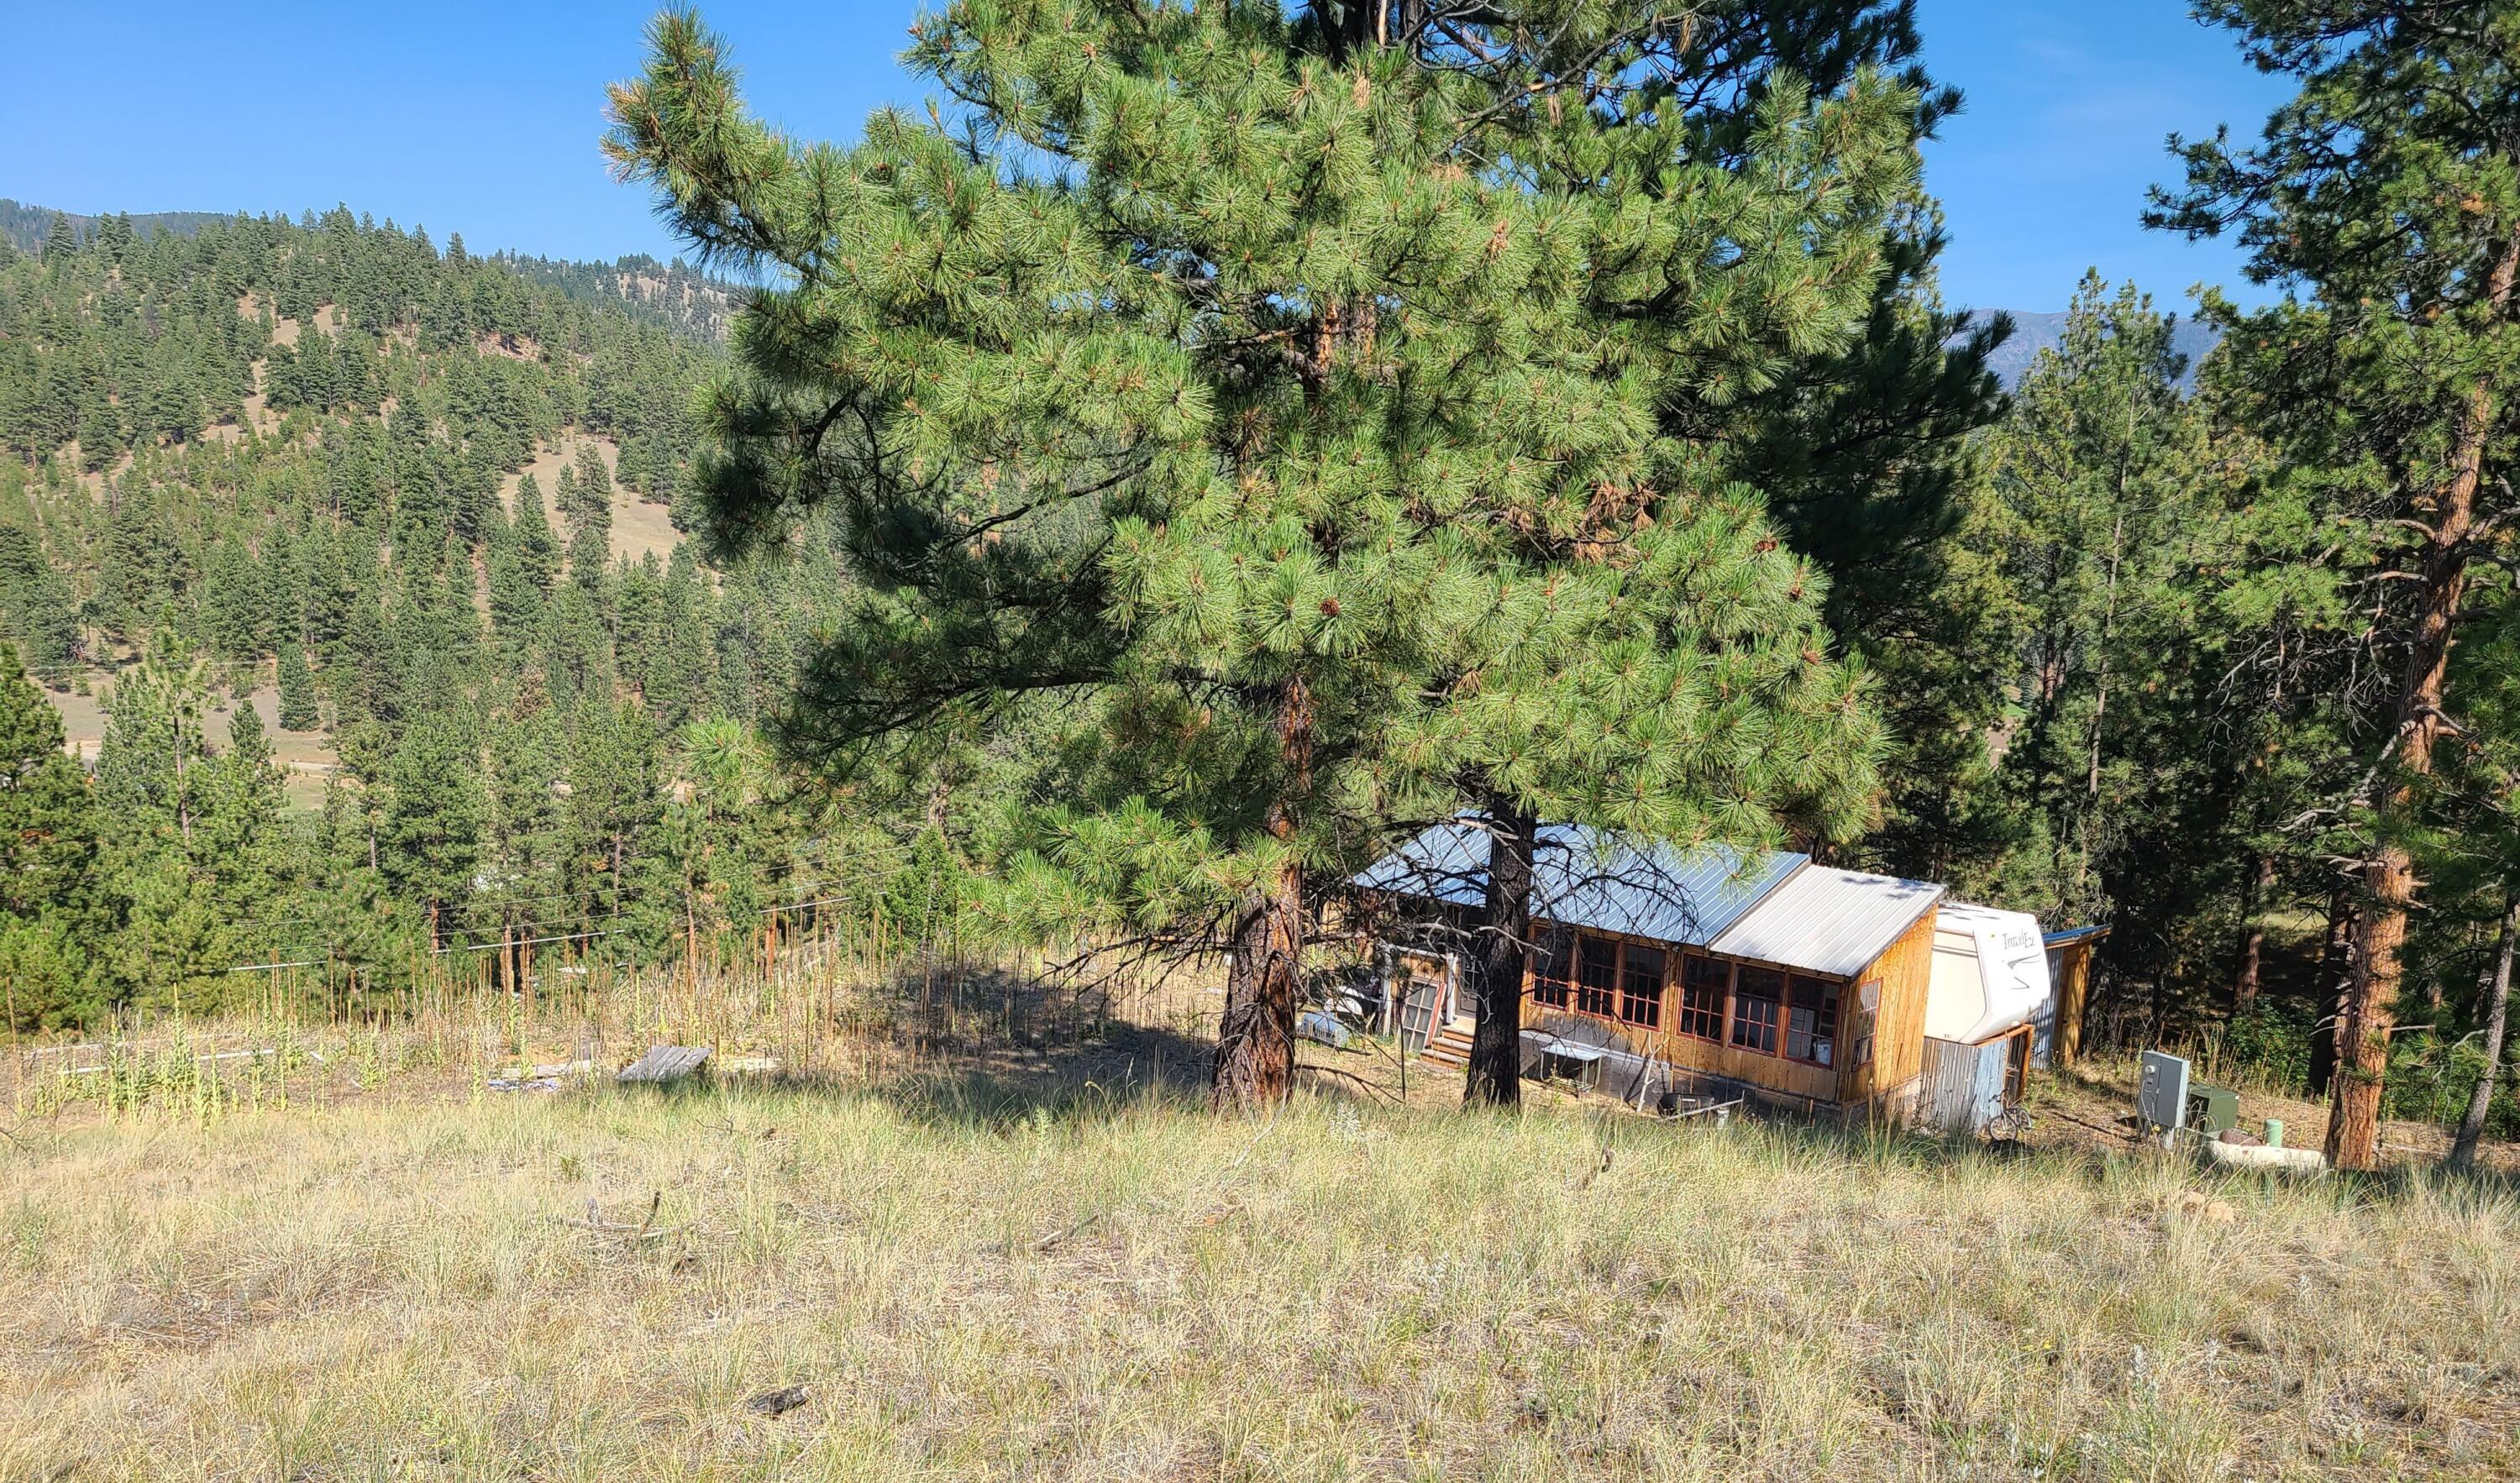 Own your own piece of Montana!  This property comes with utilities in place for the same price as other properties without utilities.  The views on this amazing 3.55 acre property face the Elkhorn Mountains and is only a half mile from prime hunting and outdoor recreation areas in the Helena National Forest.  Utilities including a well, electricity with transformer box, propane tank, septic, and cable and WIFI setup. Call Andrea Lamping at 406-439-9934 or your Real Estate professional for your personal showing. PLEASE DO NOT VISIT THIS PROPERTY WITHOUT AN APPT AND AN AGENT.